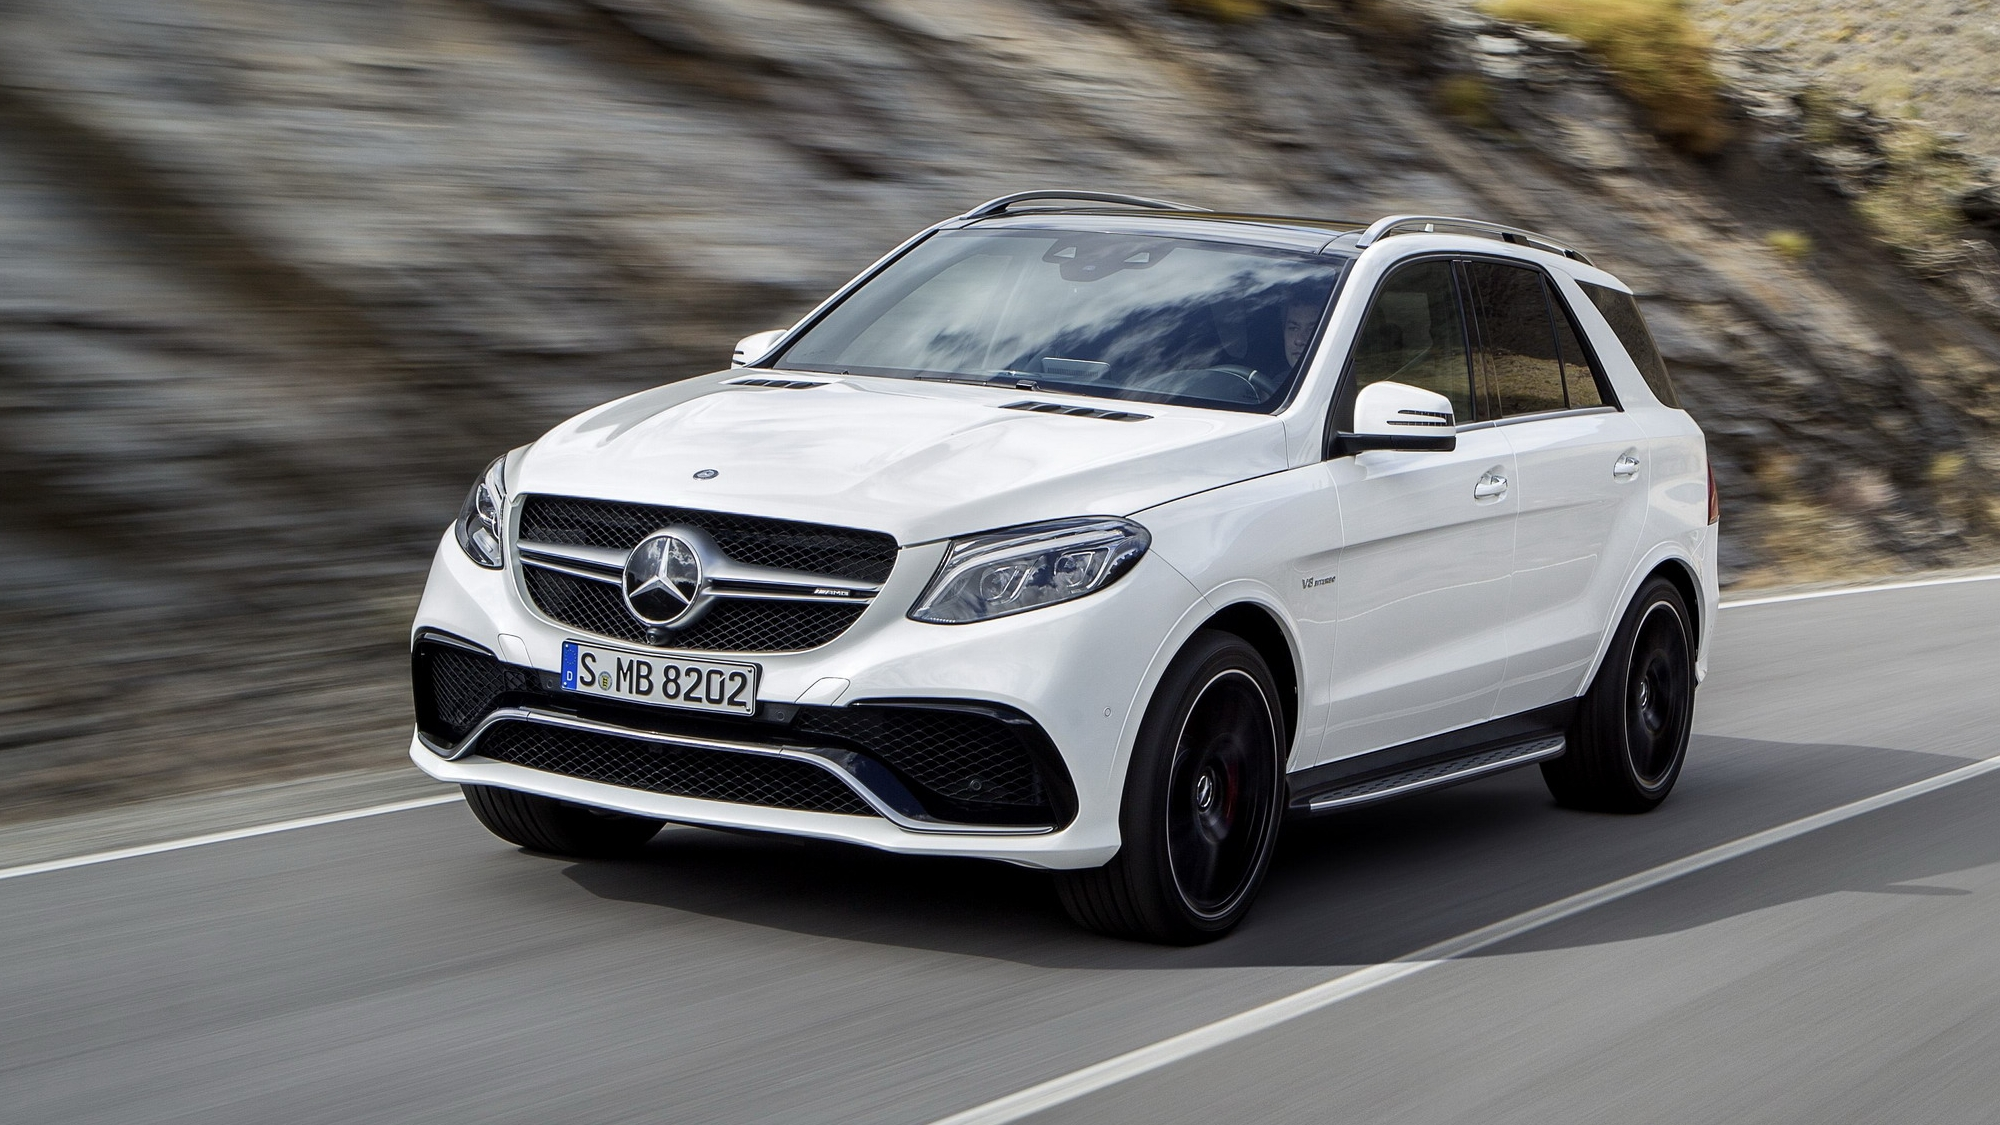 2016 Mercedes-AMG GLE63 Pictures, Photos, Wallpapers. | Top Speed